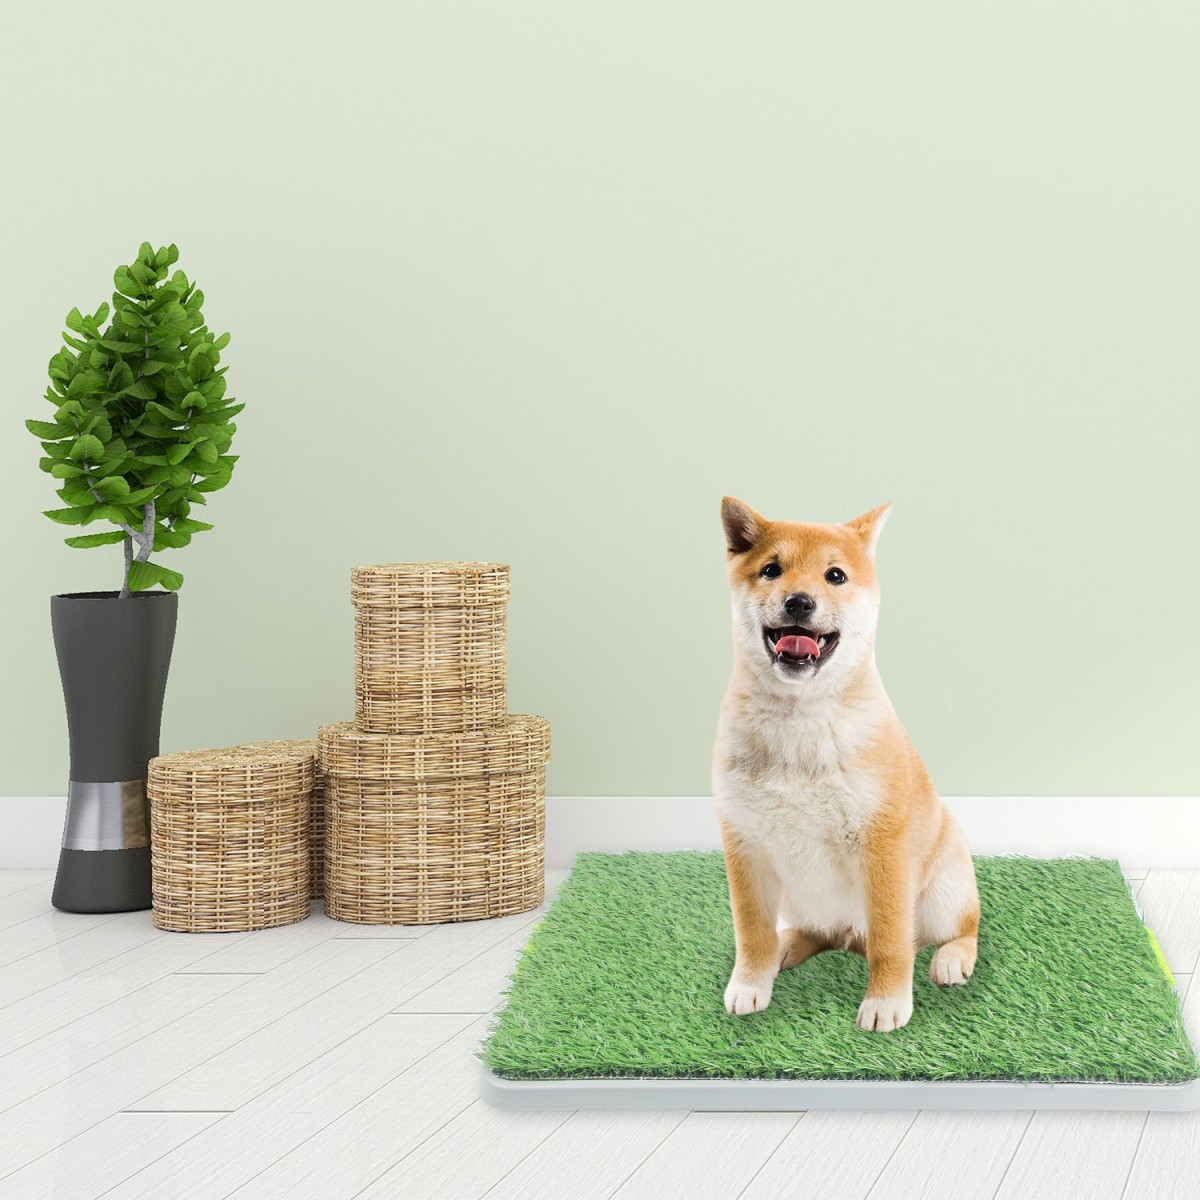 Artificial Dog Potty Grass for Indoor and Outdoor Use